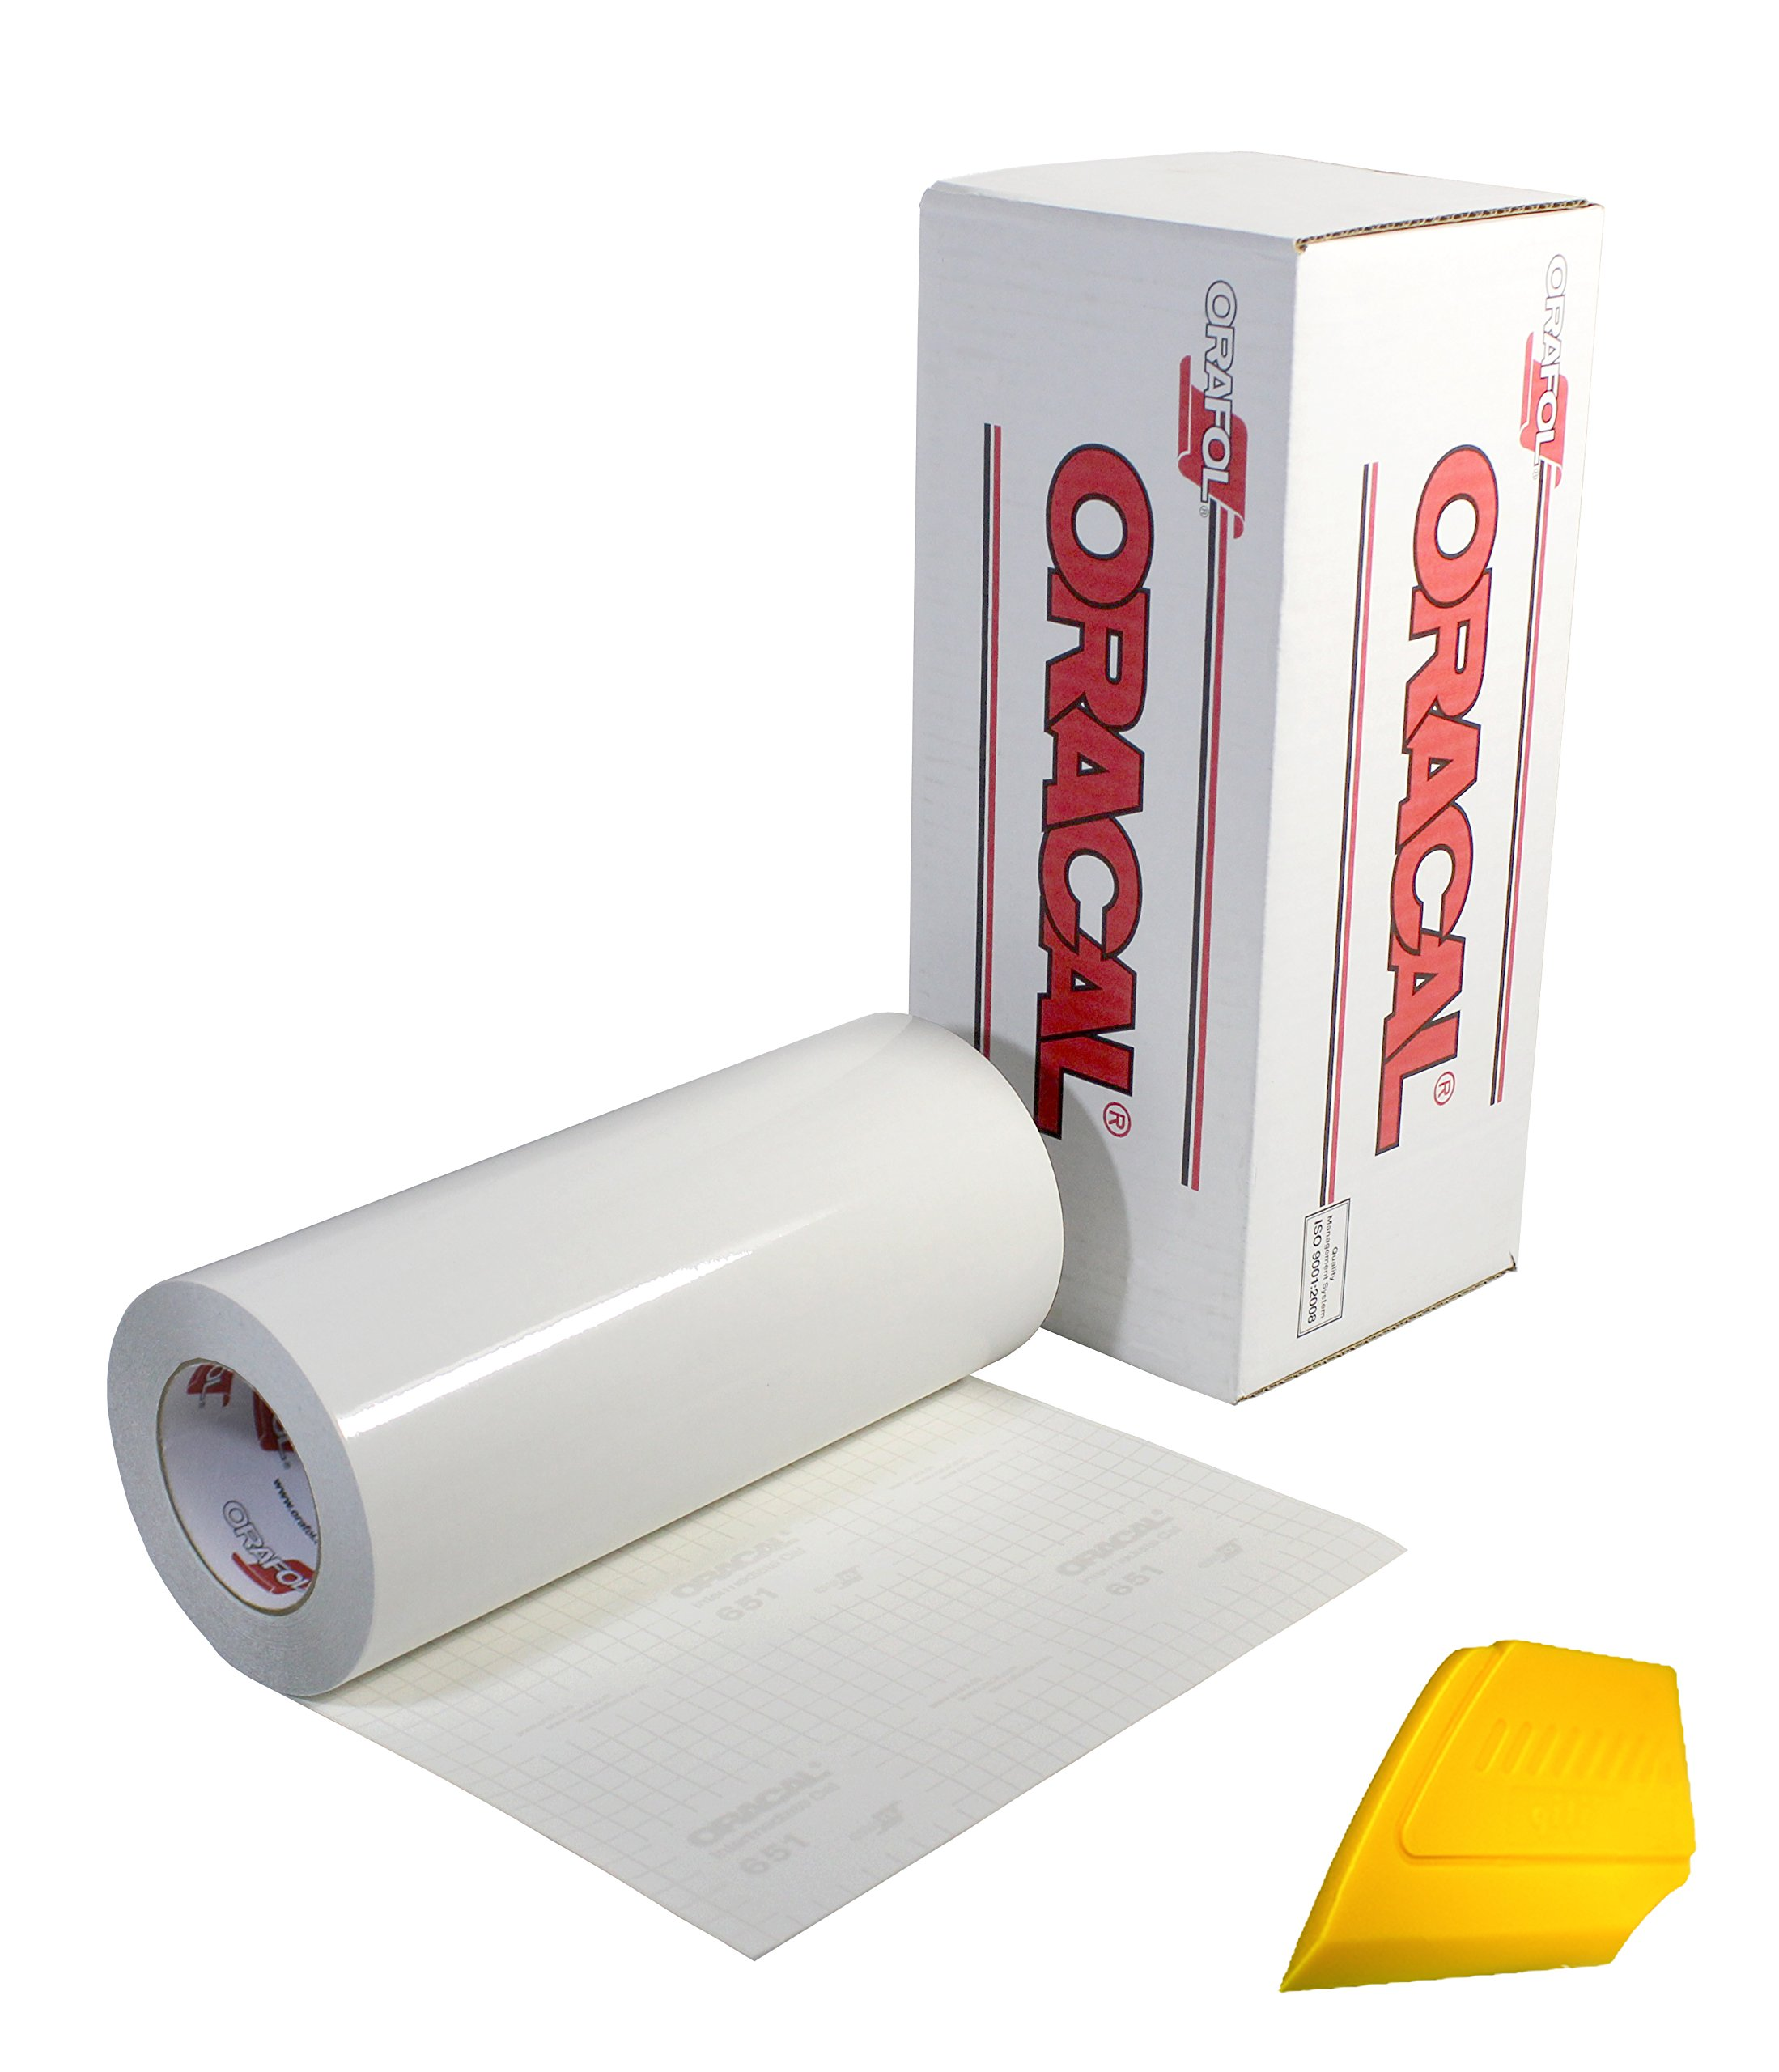 Oracal Clear Transfer Tape Roll (12 inch x 100 Foot)